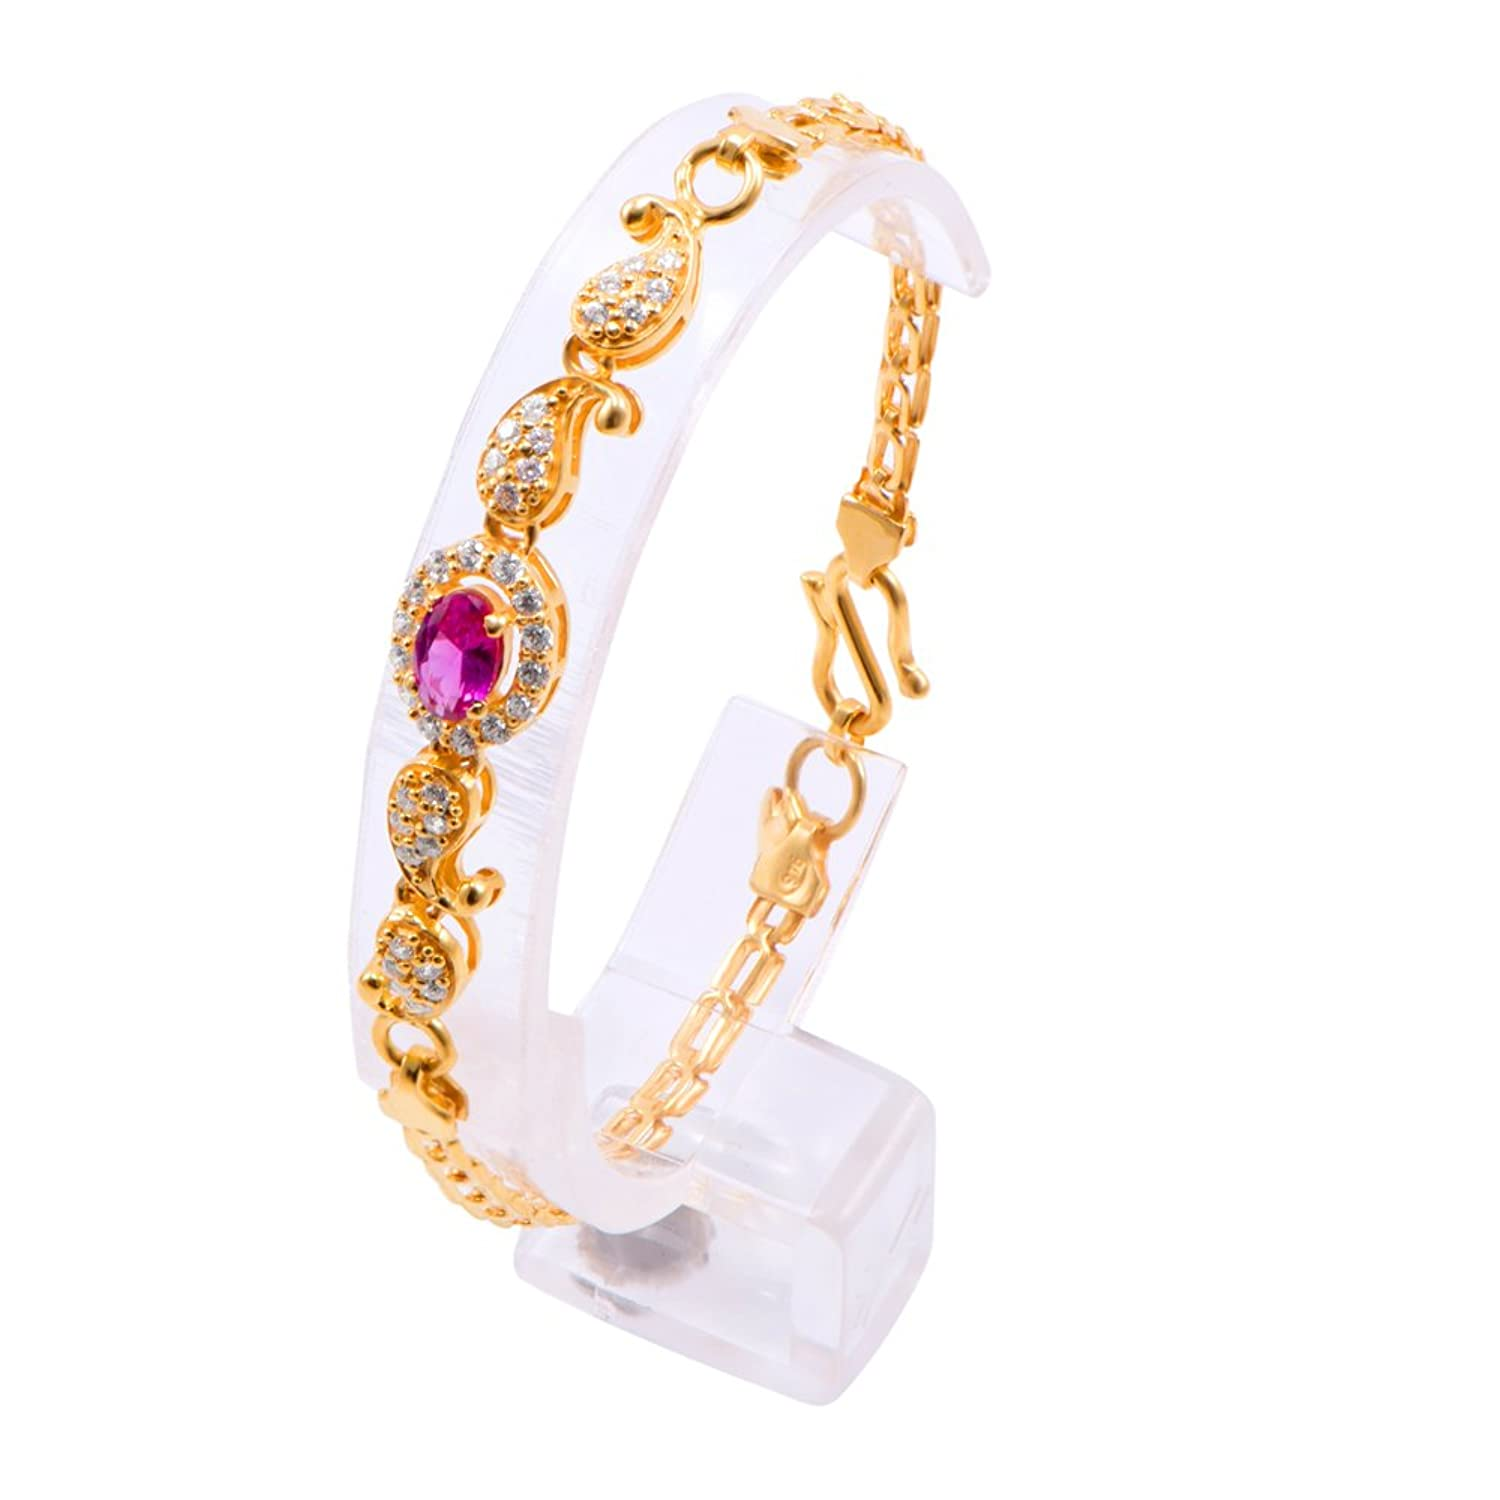 Buy Joyalukkas Impress Collection 22k Yellow Gold Charm Bracelet